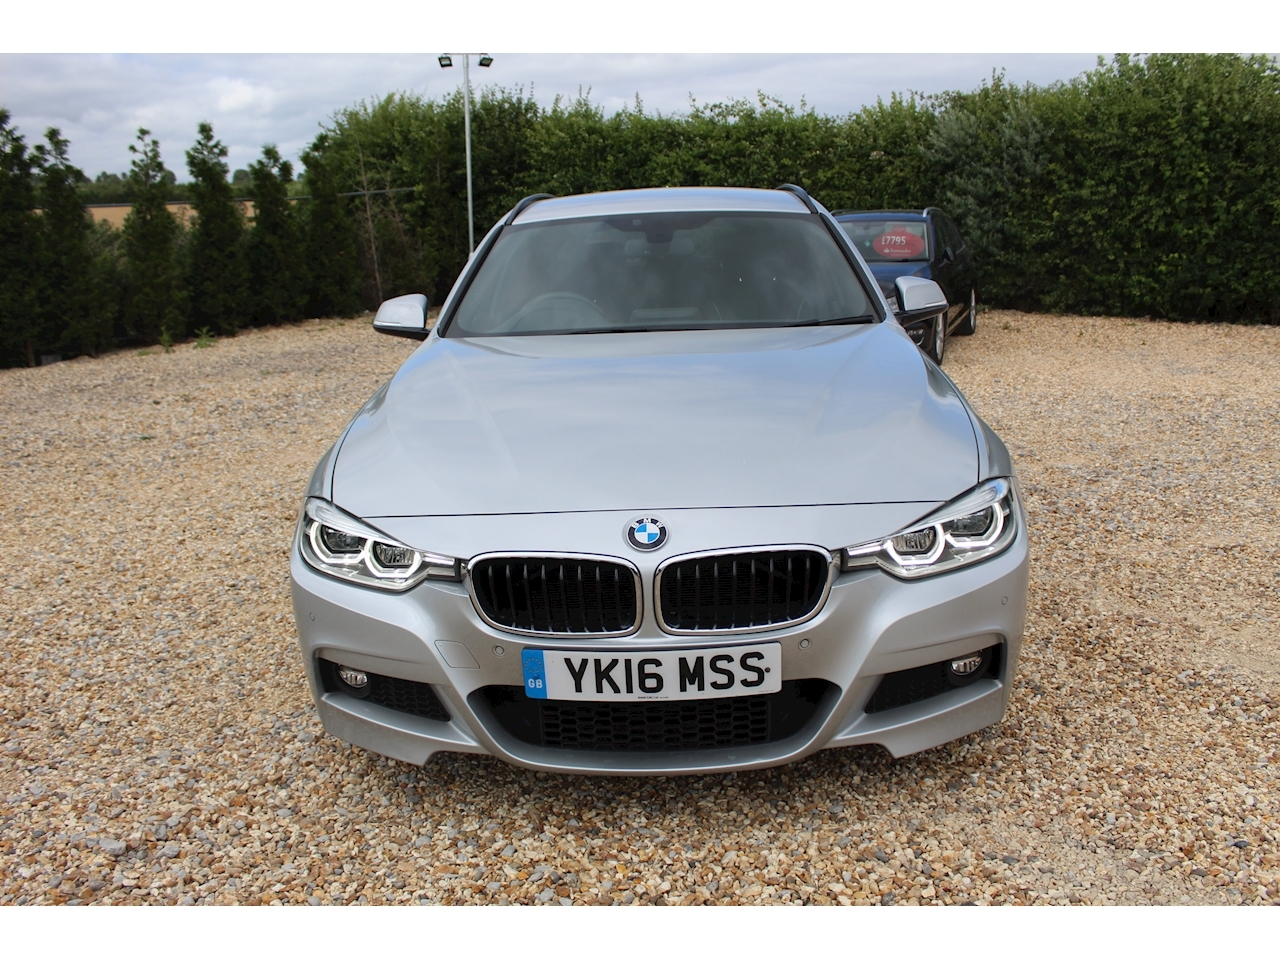 3 Series 320I Xdrive M Sport Touring Estate 2.0 Automatic Petrol